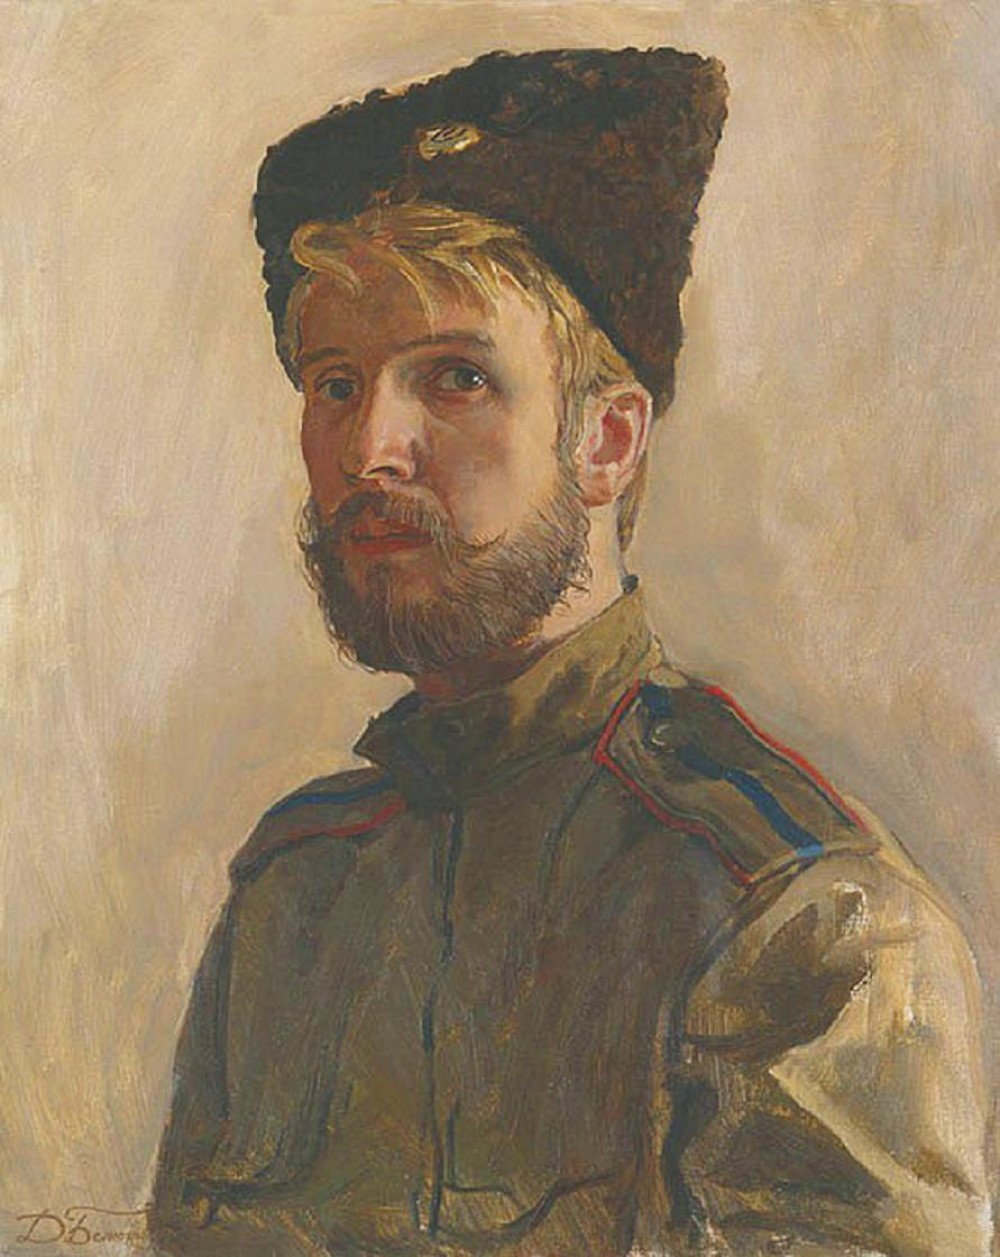 Dmitri Belyukin. 'Kozachok'. A Self-Portrait Wearing the Uniform of the 4th Don Cossack Regiment. 1991